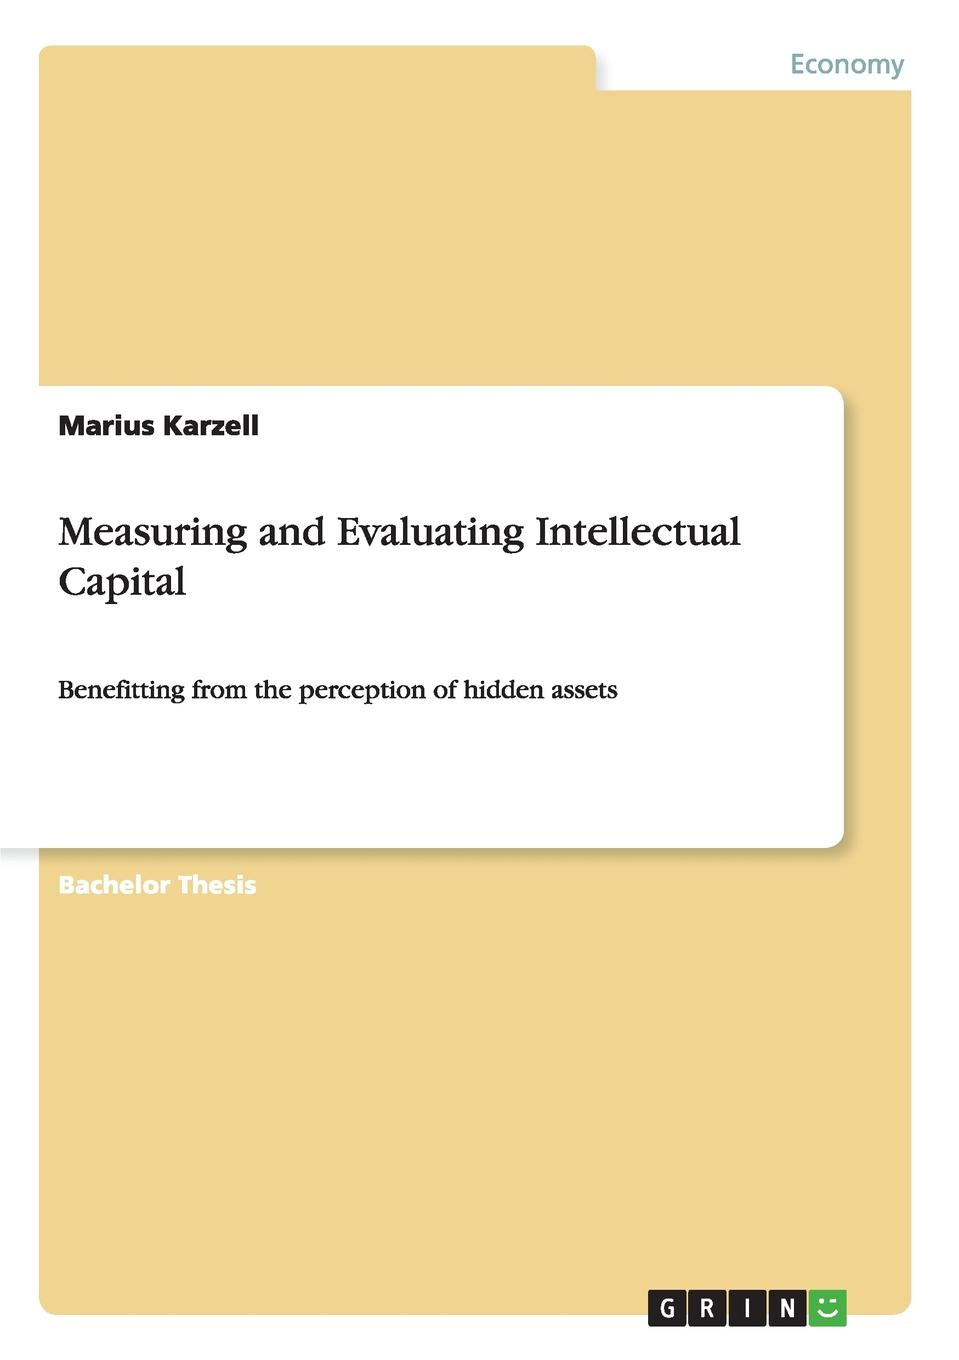 Marius Karzell Measuring and Evaluating Intellectual Capital john jordan m information technology and innovation resources for growth in a connected world